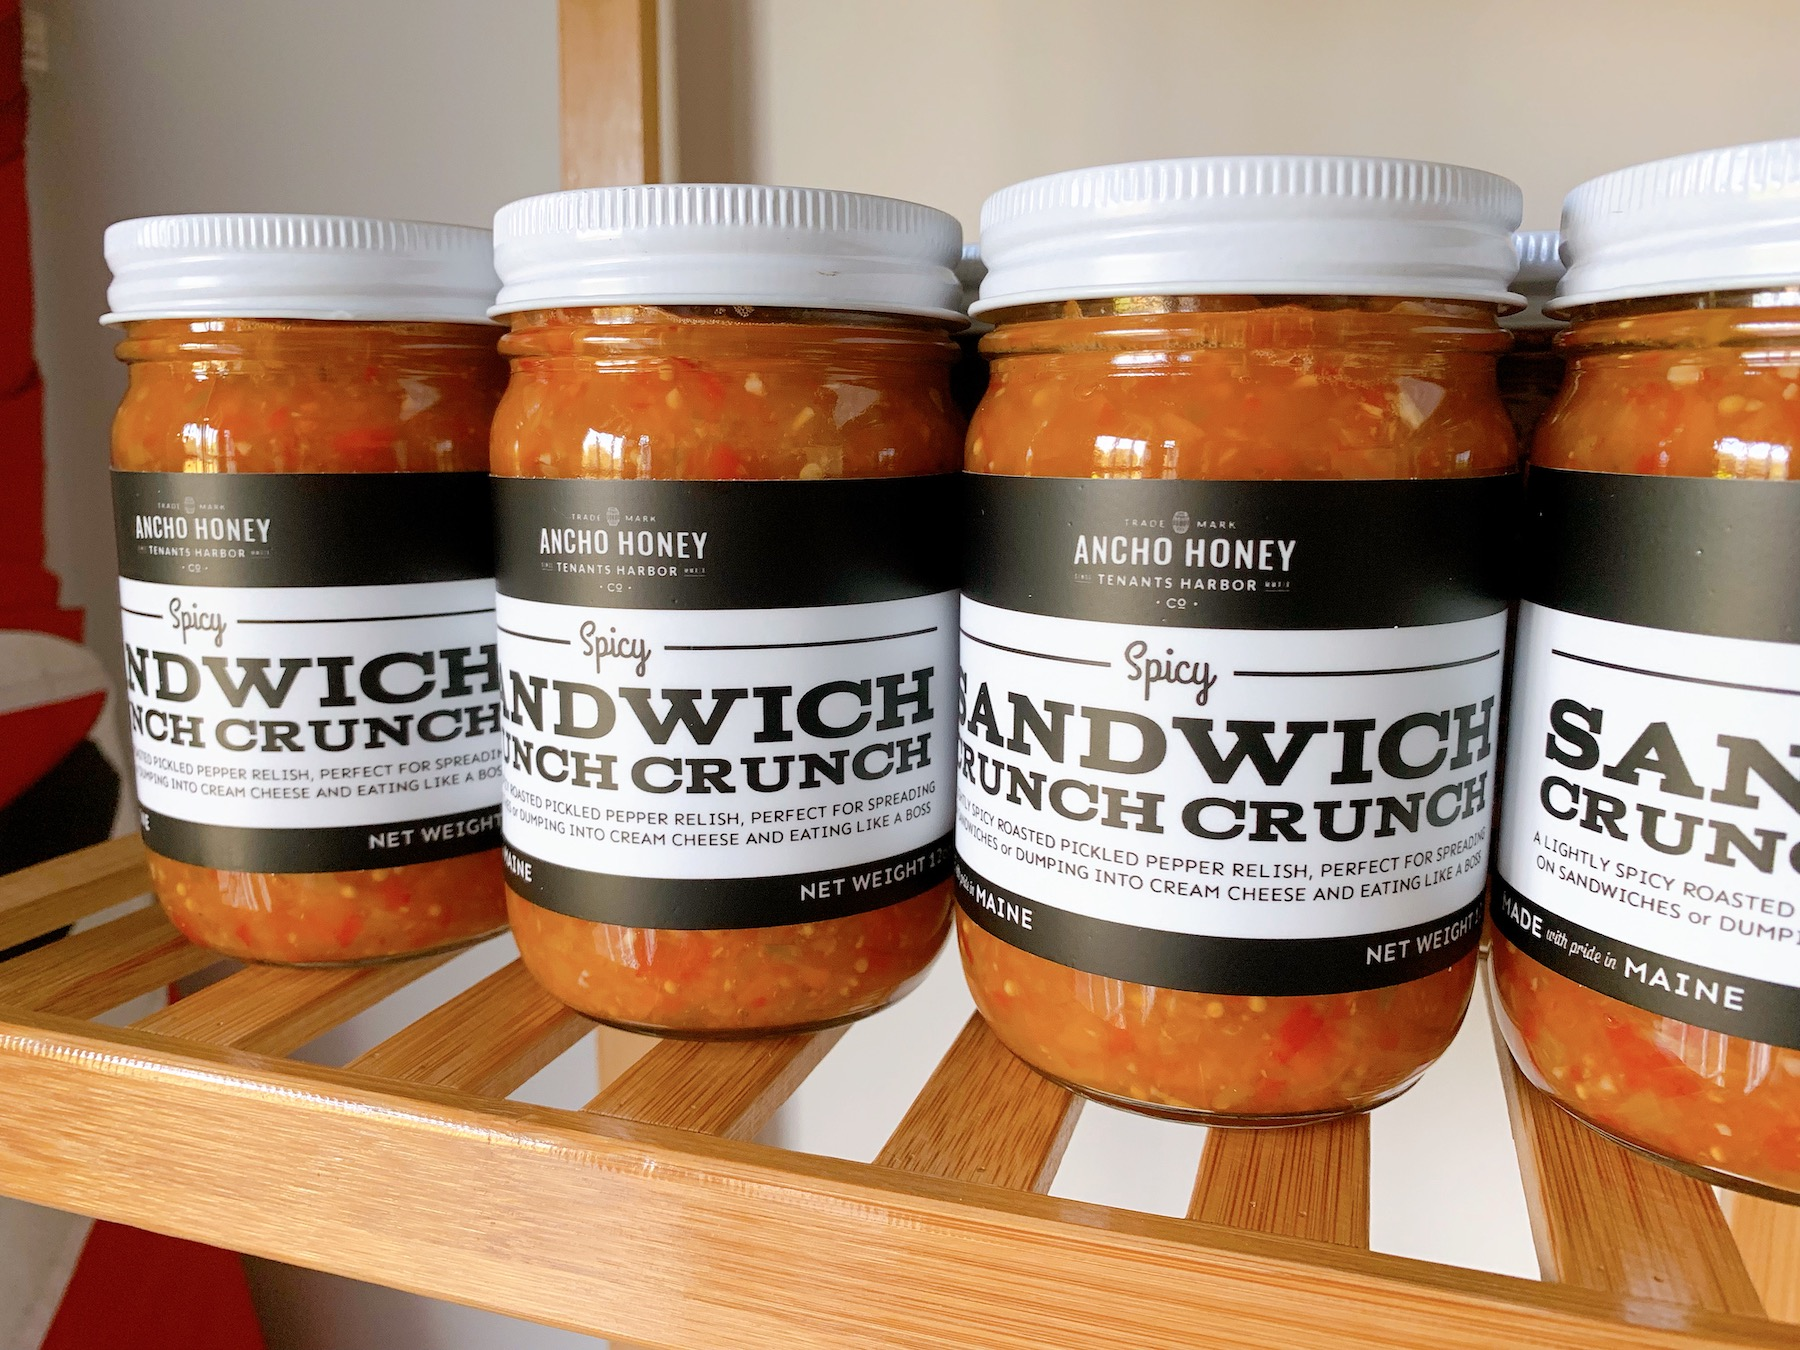 57 Good And Bad Homemade Food Business Name Ideas